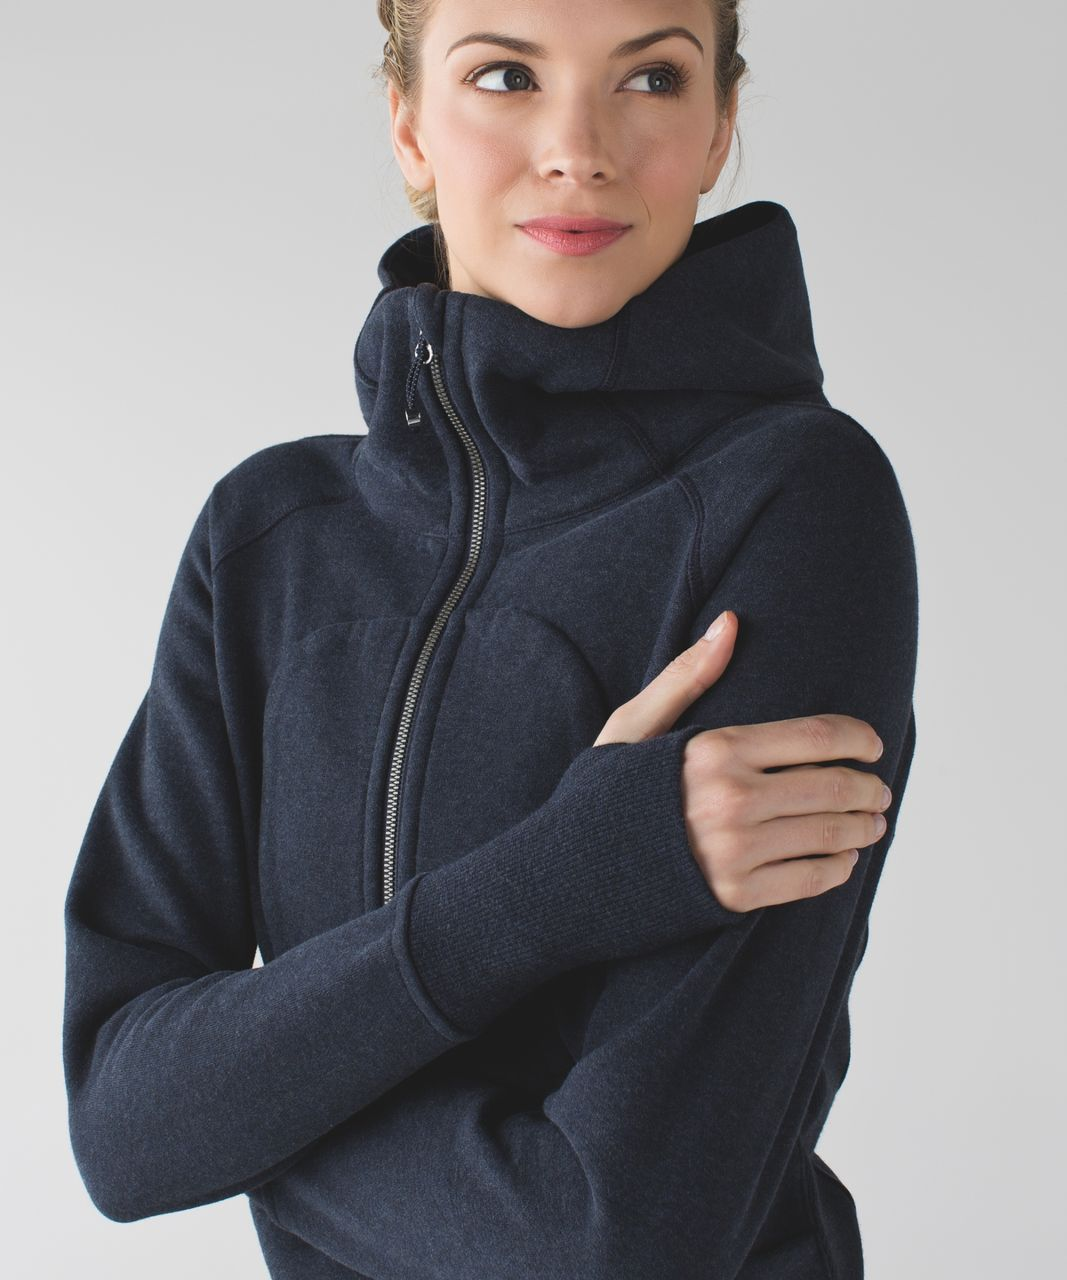 durable in use great varieties quality first Lululemon Scuba Hoodie *Classic Cotton Fleece - Heathered Naval Blue